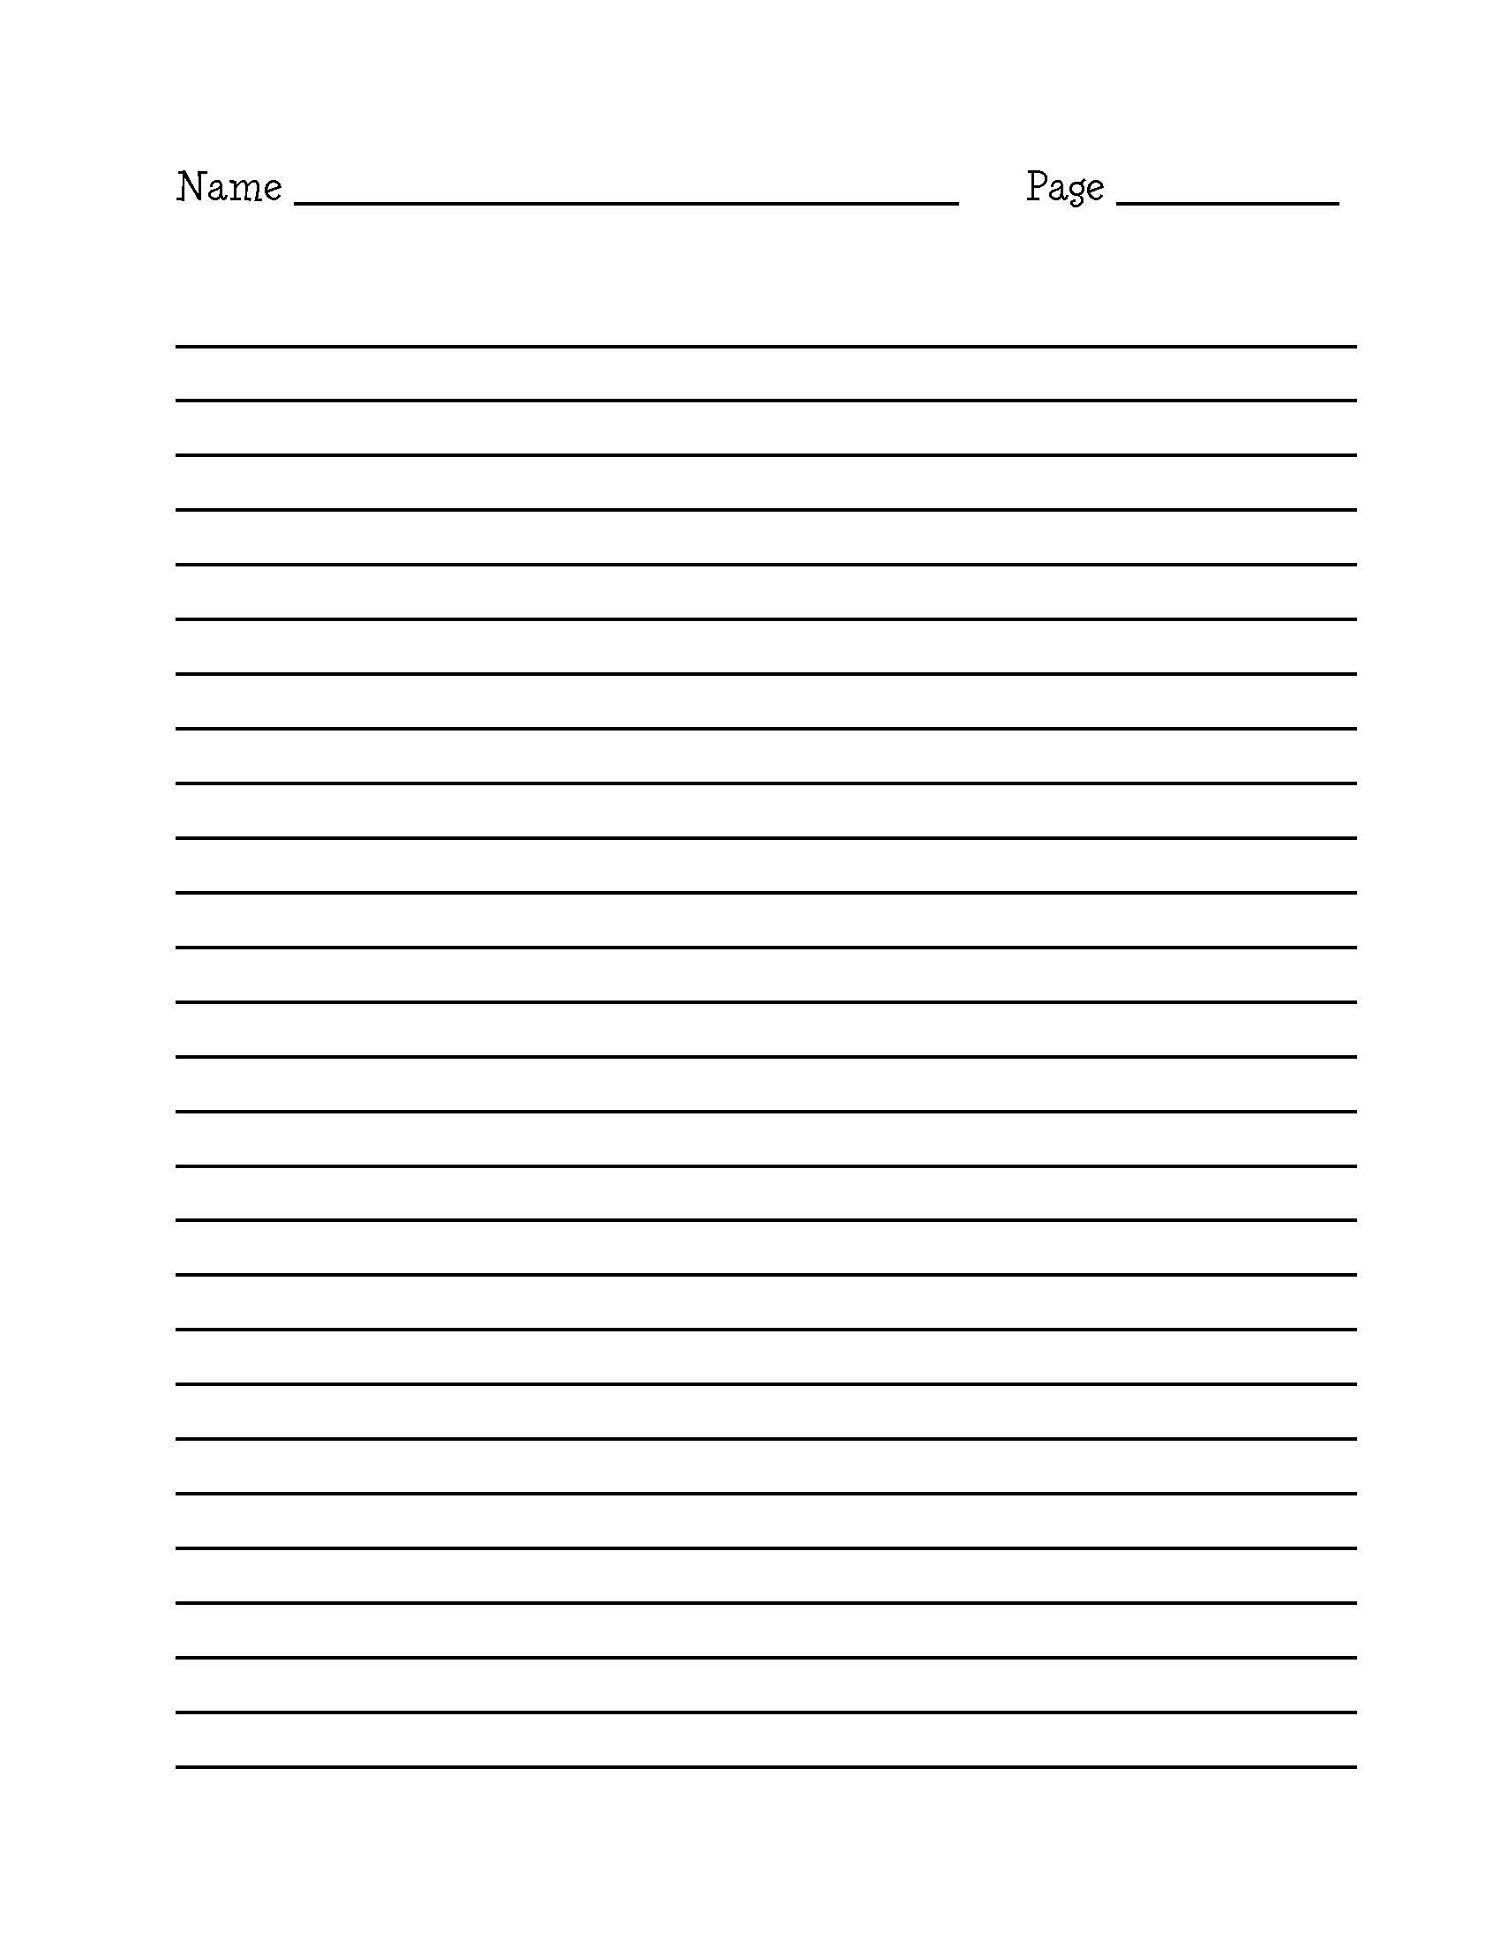 Good Lined Paper For Writing For Cute Writing Paper | Dear Joya Idea Lined Paper Microsoft Word Template